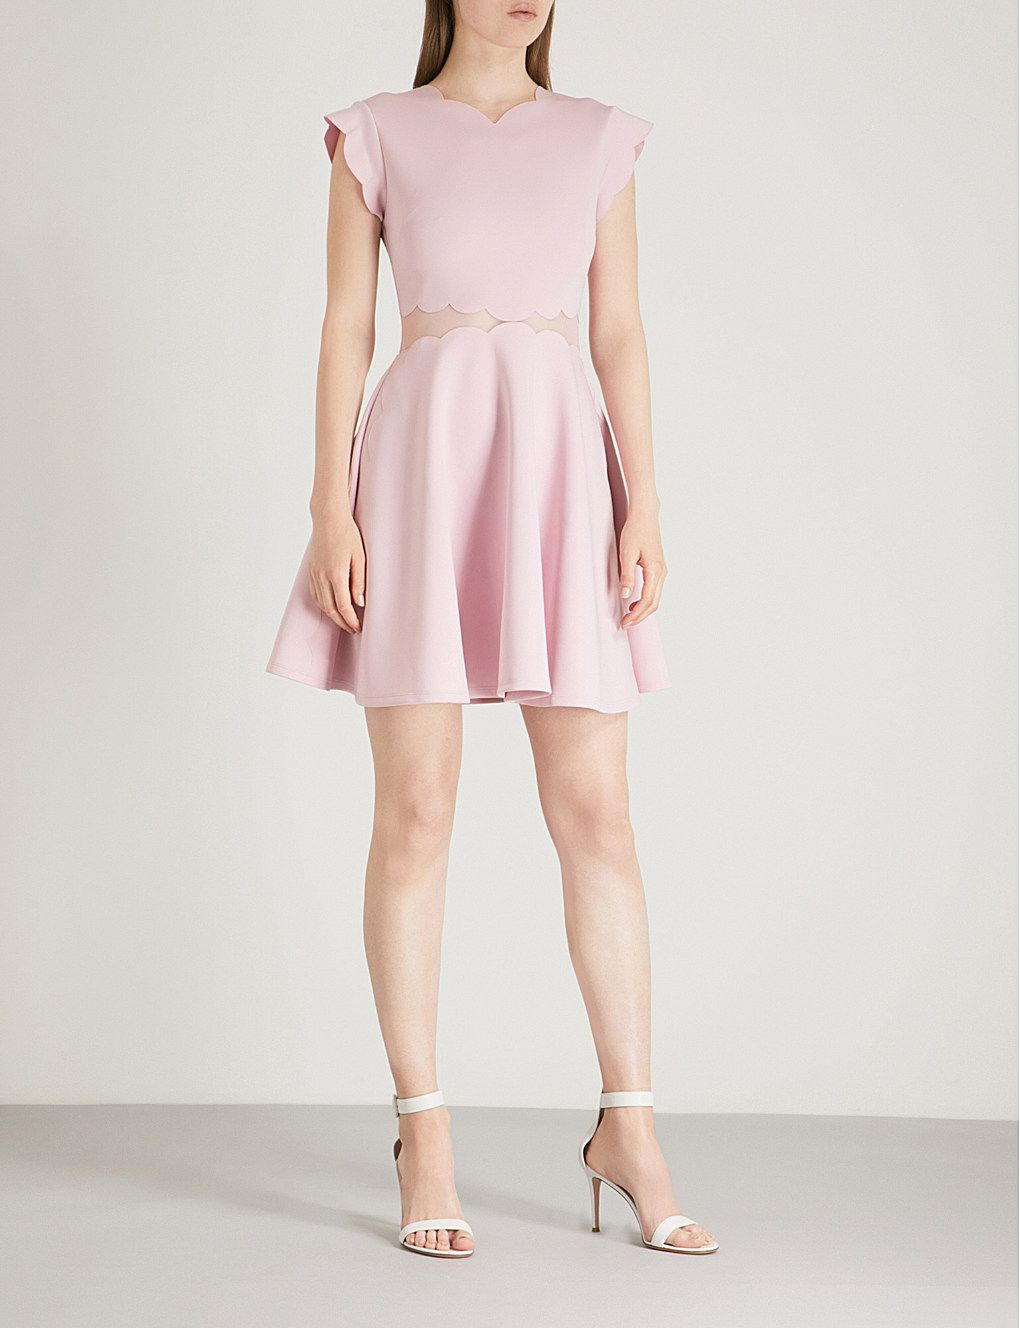 5bc974a09a73 TED BAKER Omarria scalloped jersey dress  186.00